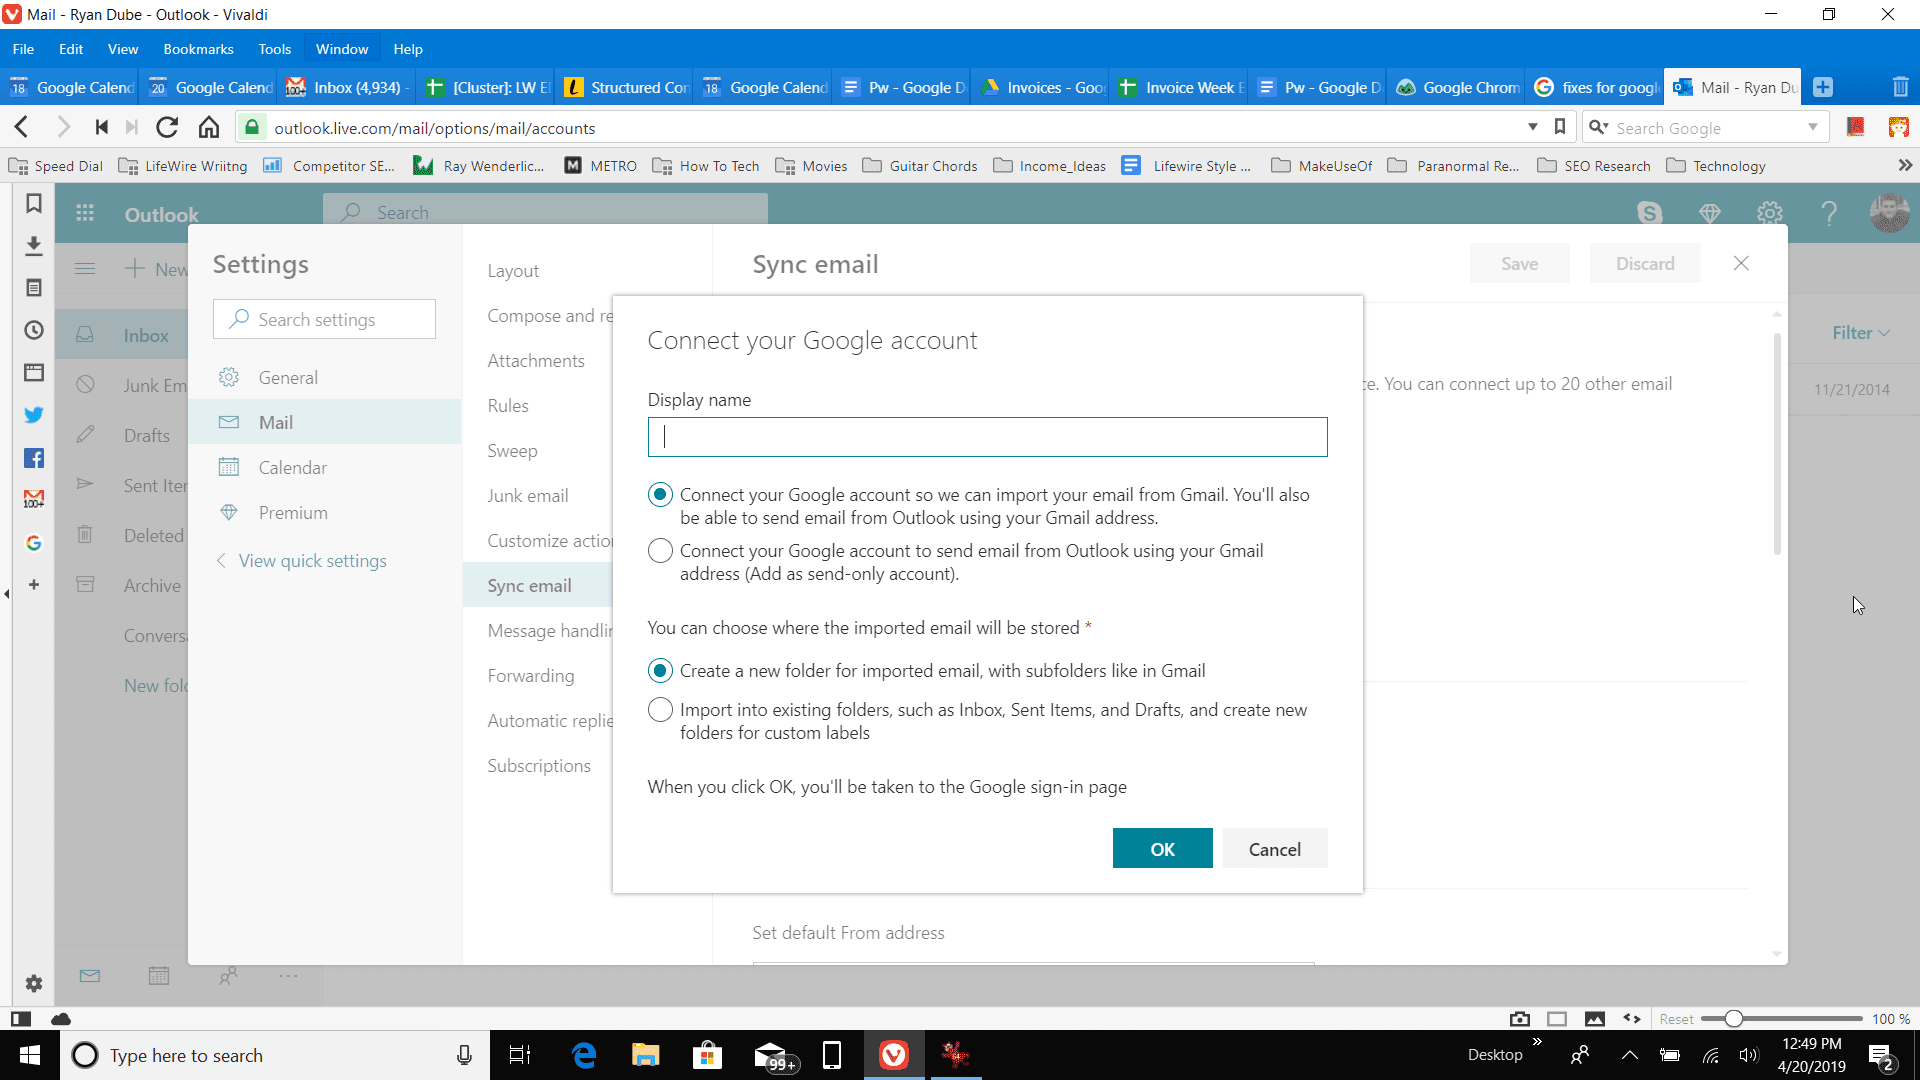 Connecting your google account in Outlook Online